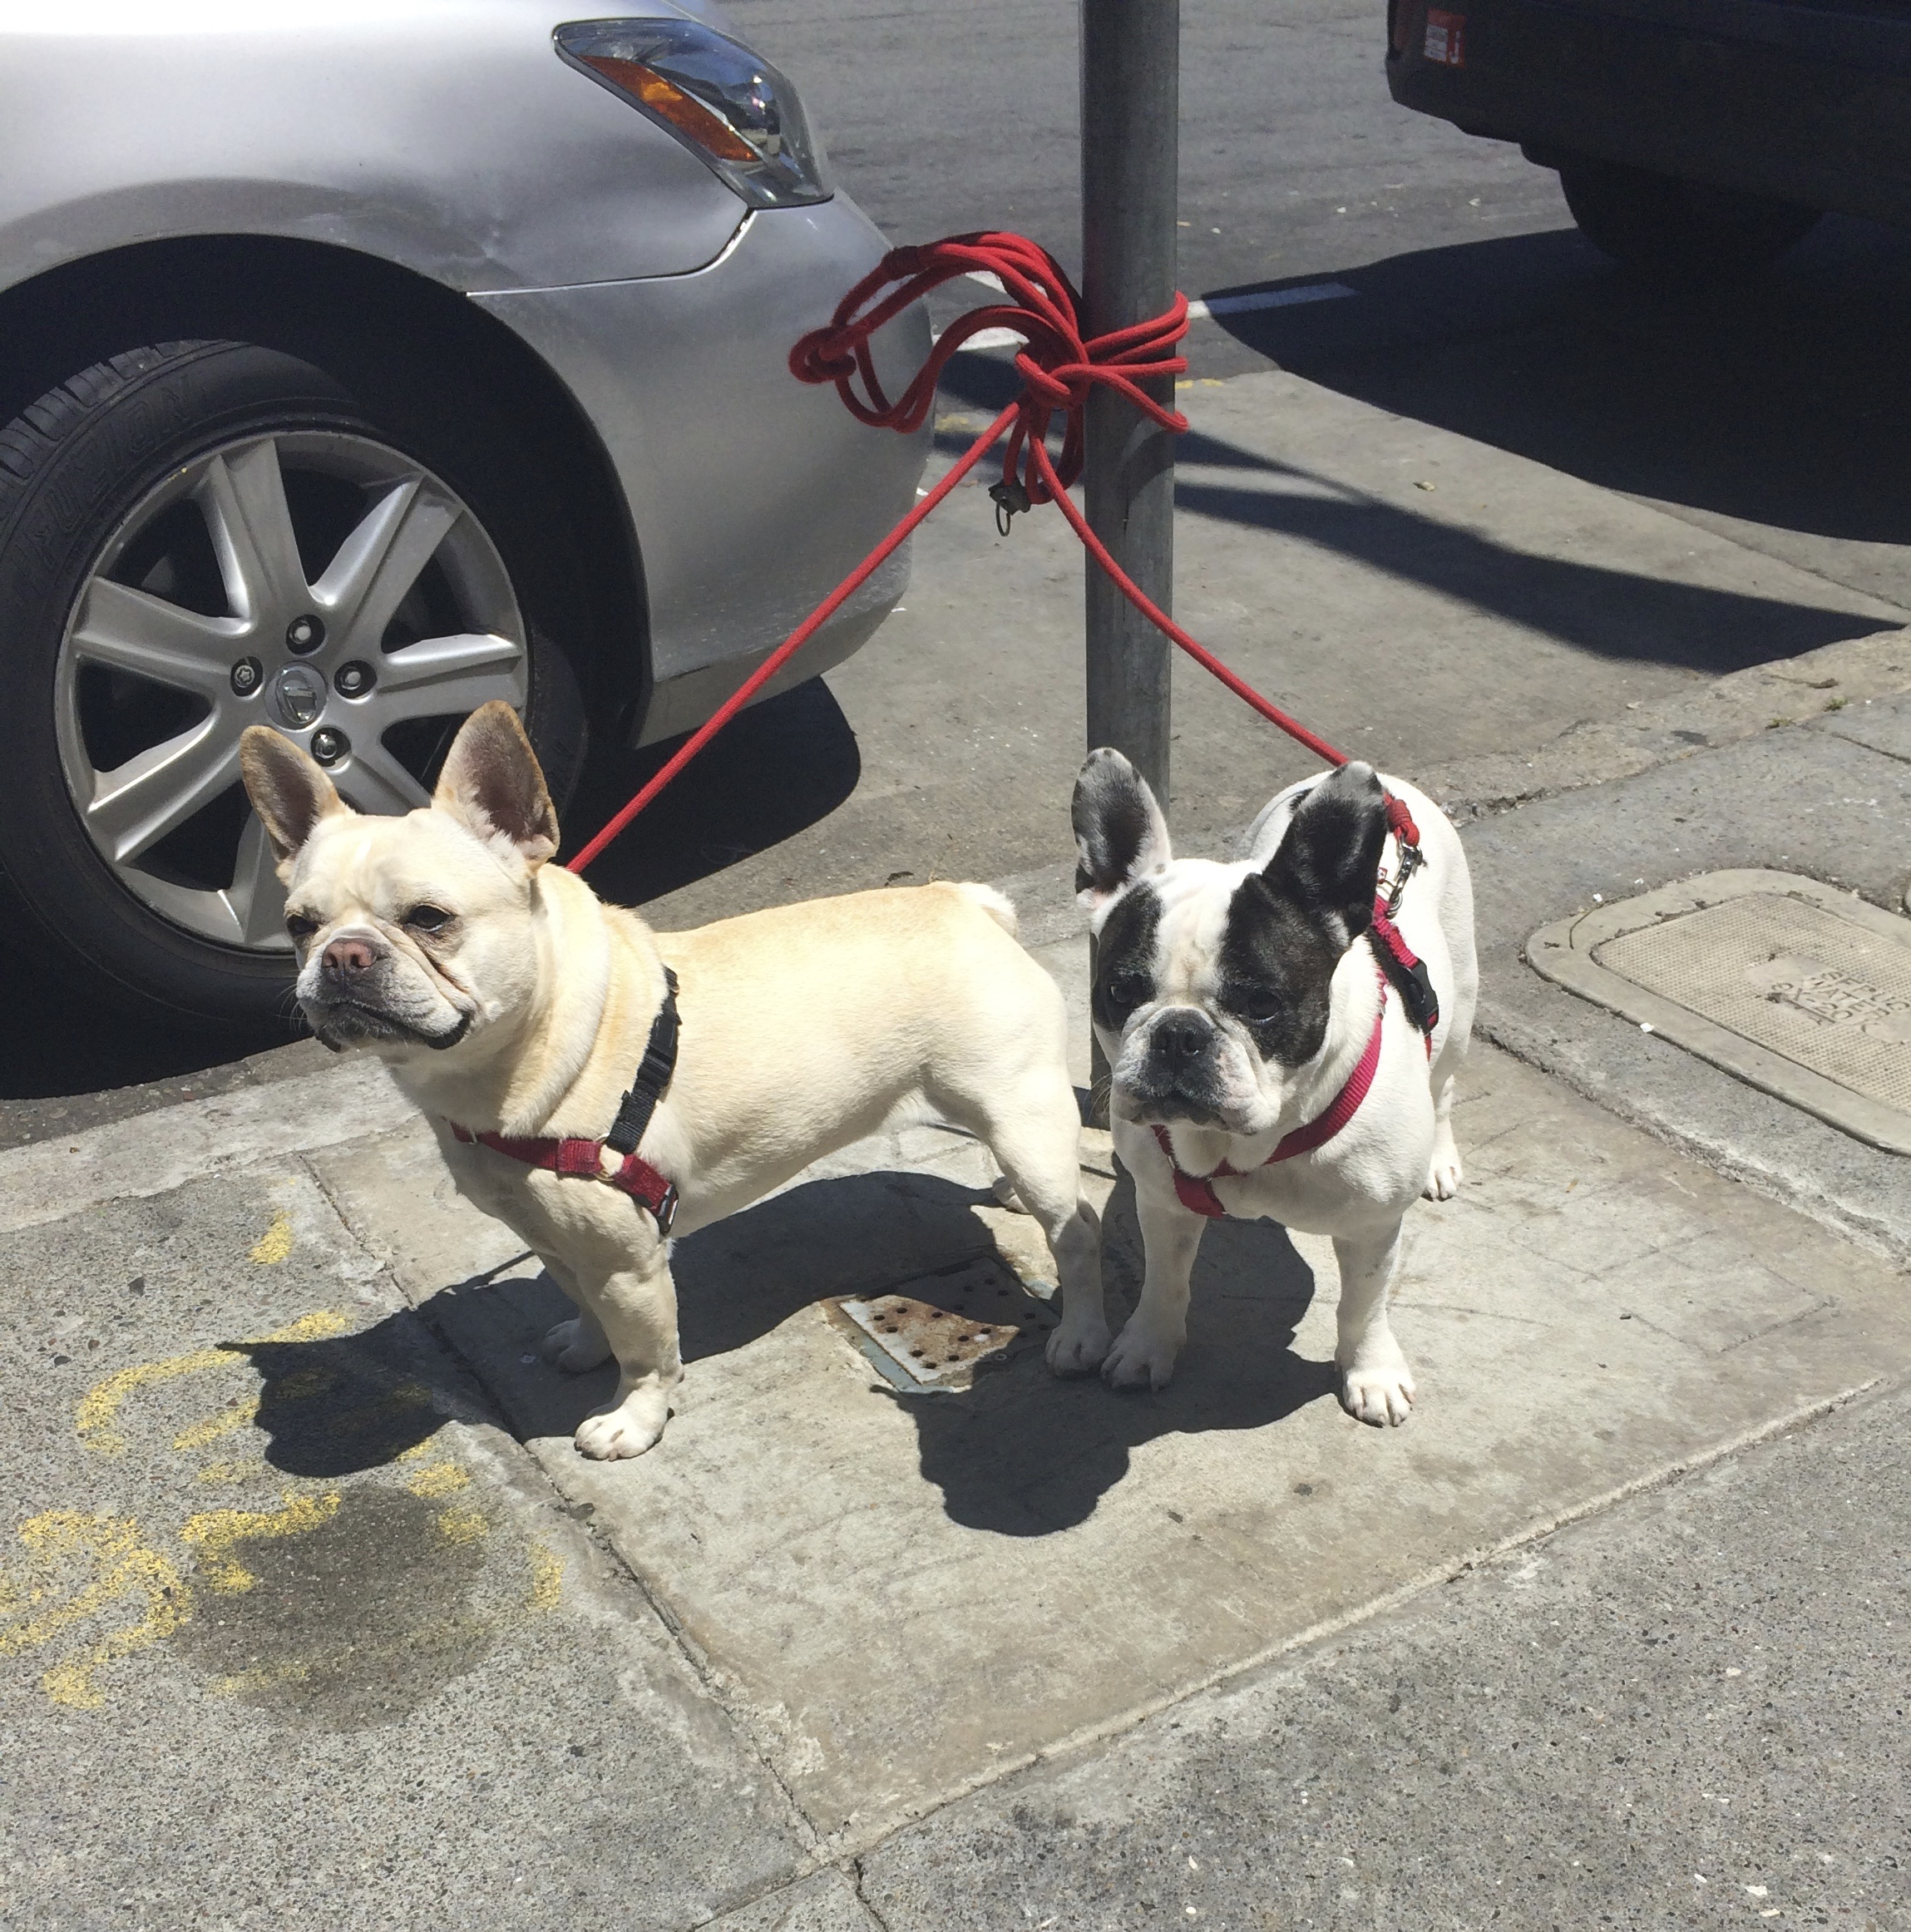 Tan French Bulldog And Black And White French Bulldog Tied To Parking Meter